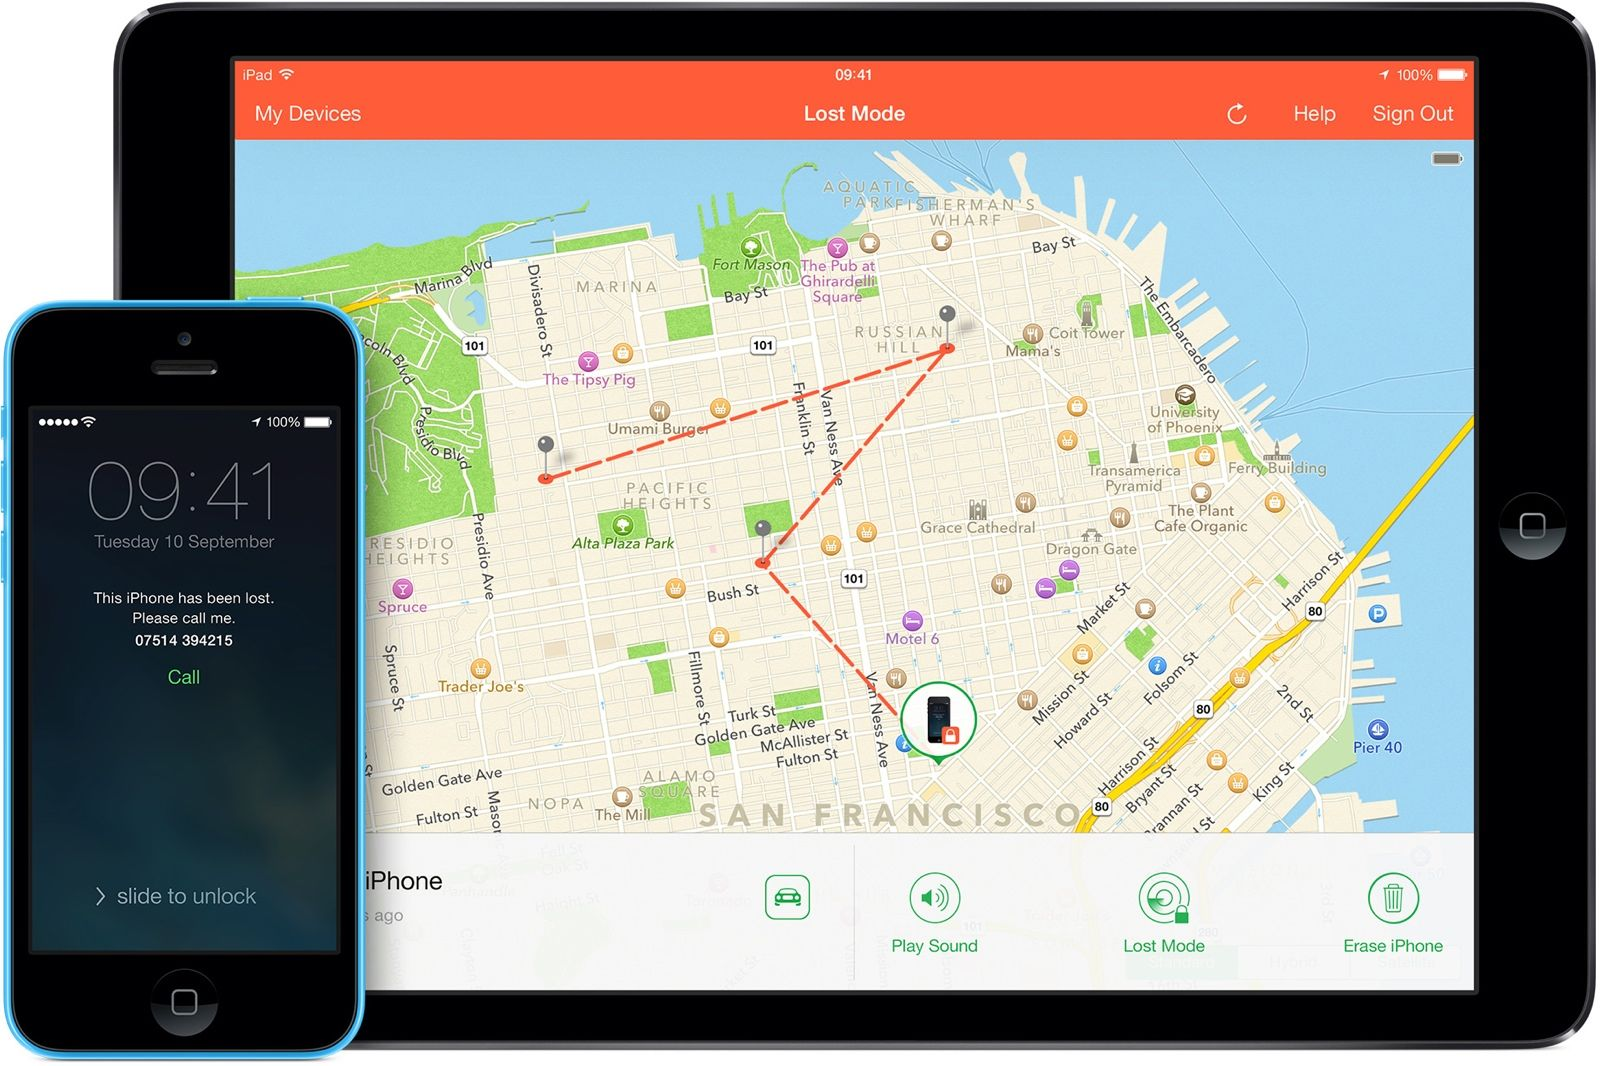 The Find My iPhone app is available on all iOS devices